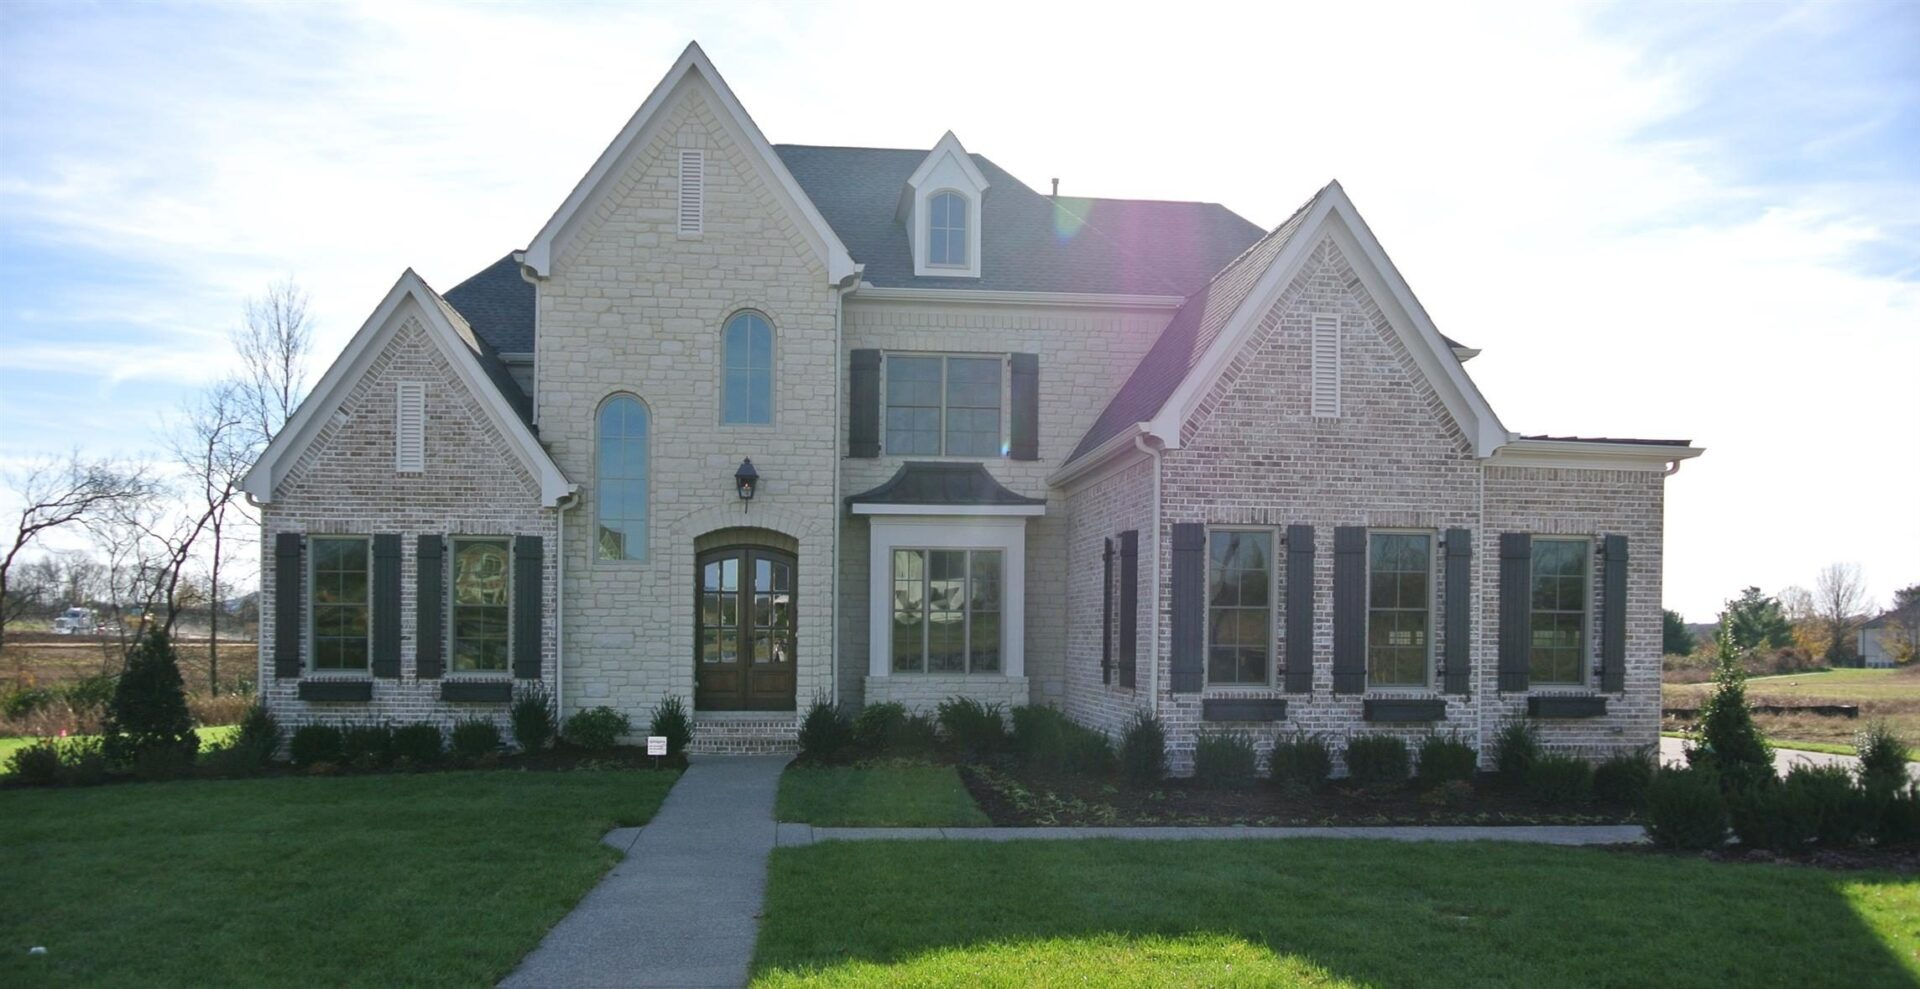 Westchester II - High-end home builders for luxury homes - luxury home builder | Nashville, TN